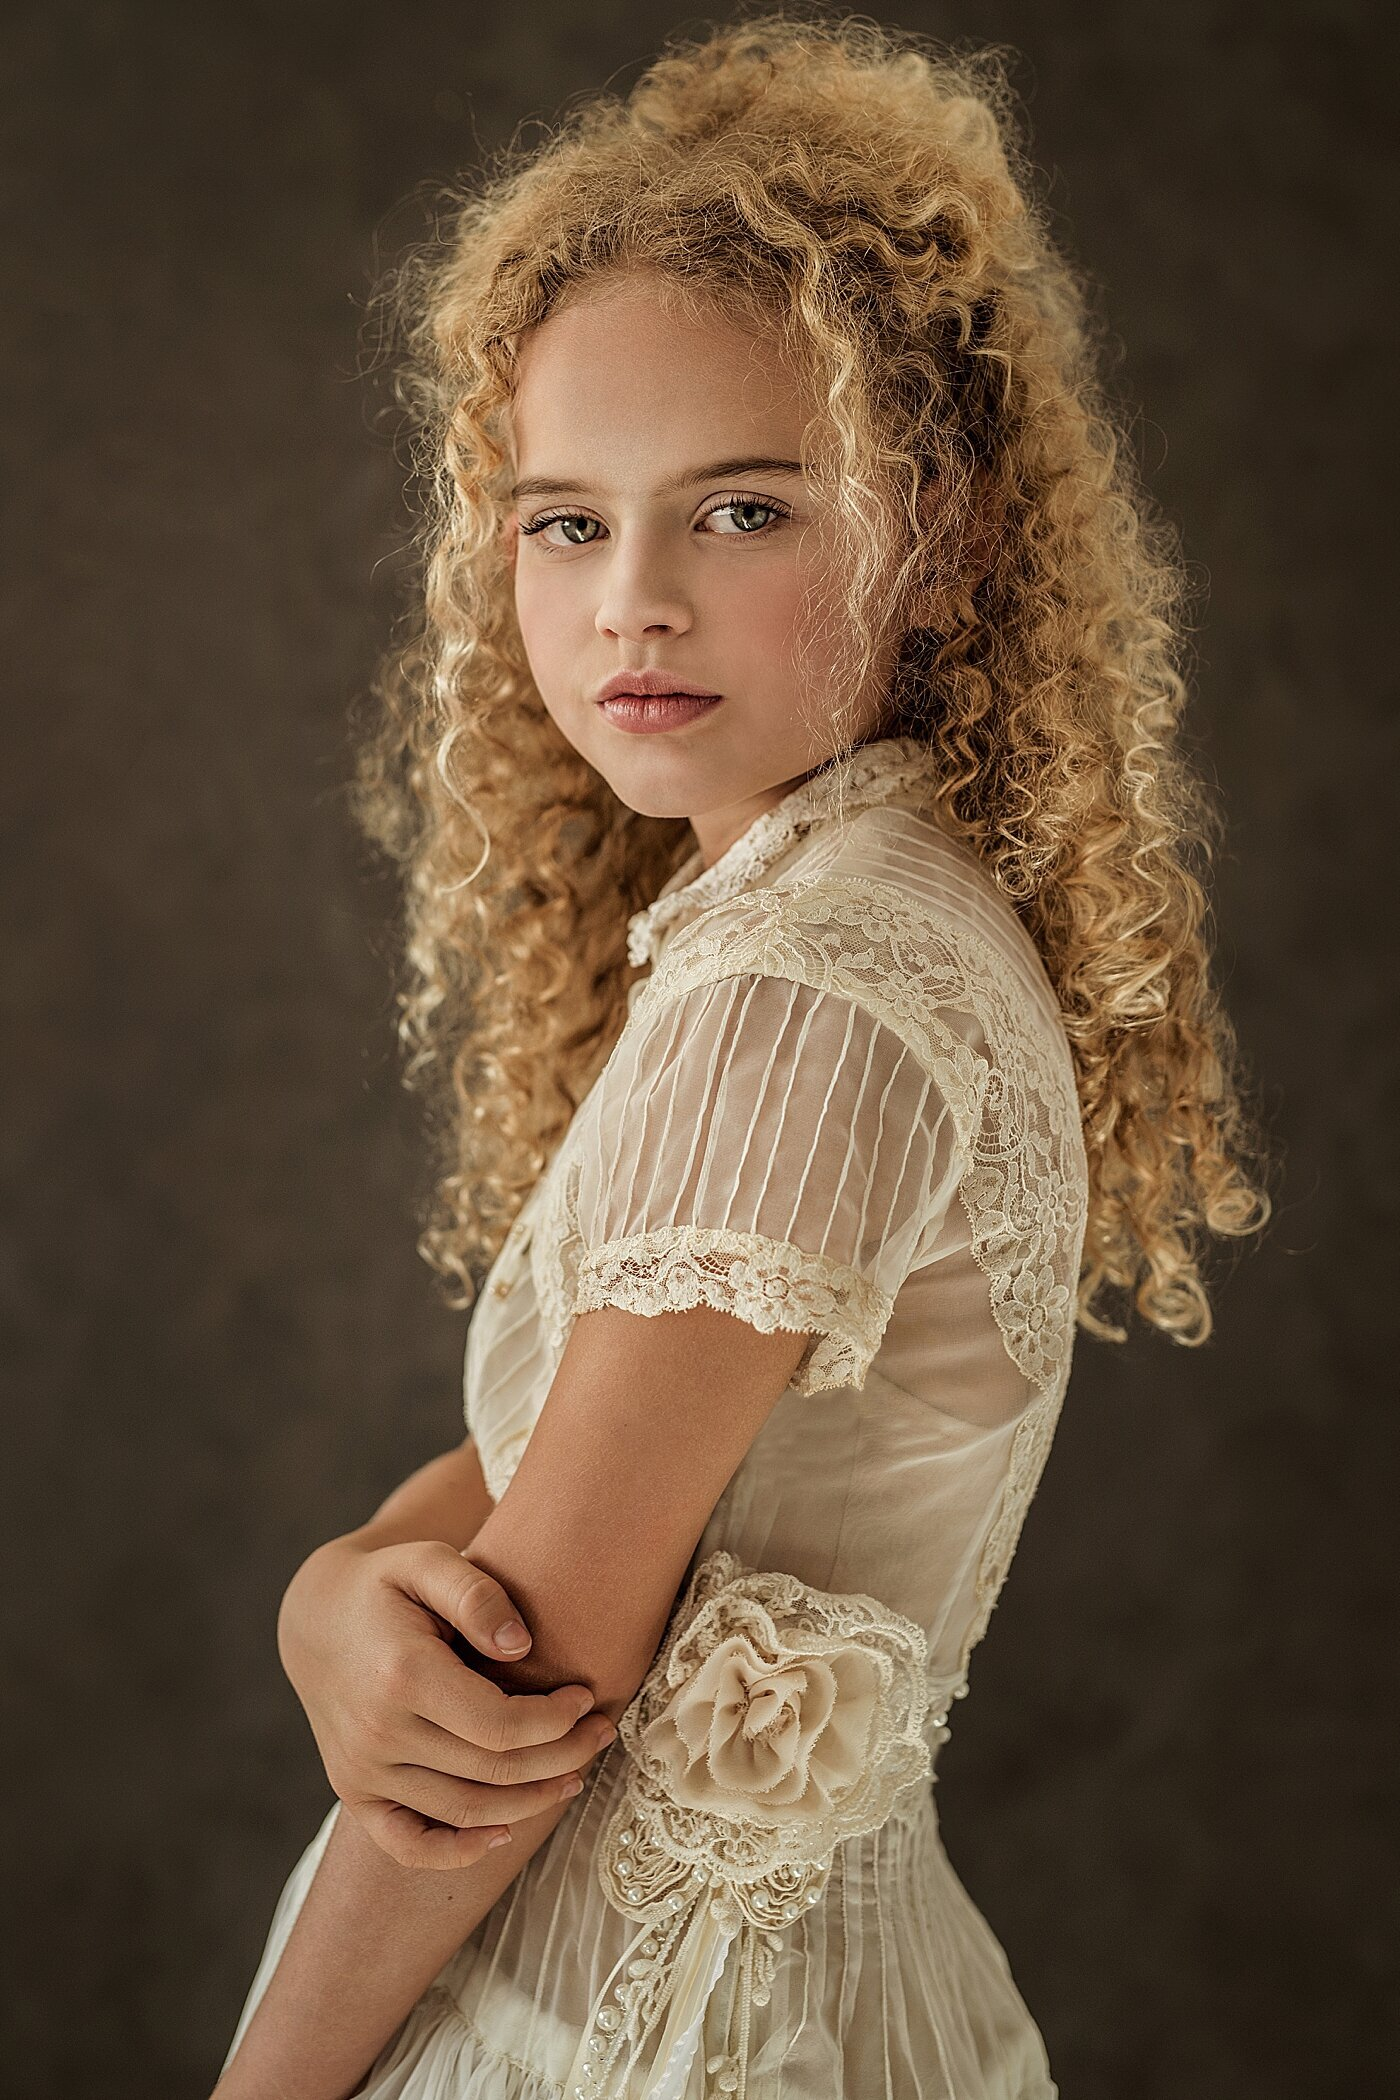 Girl-with-curl-by-Olessia-McGregor-Brisbane-Child-Creative-Fine-Art-Photographer